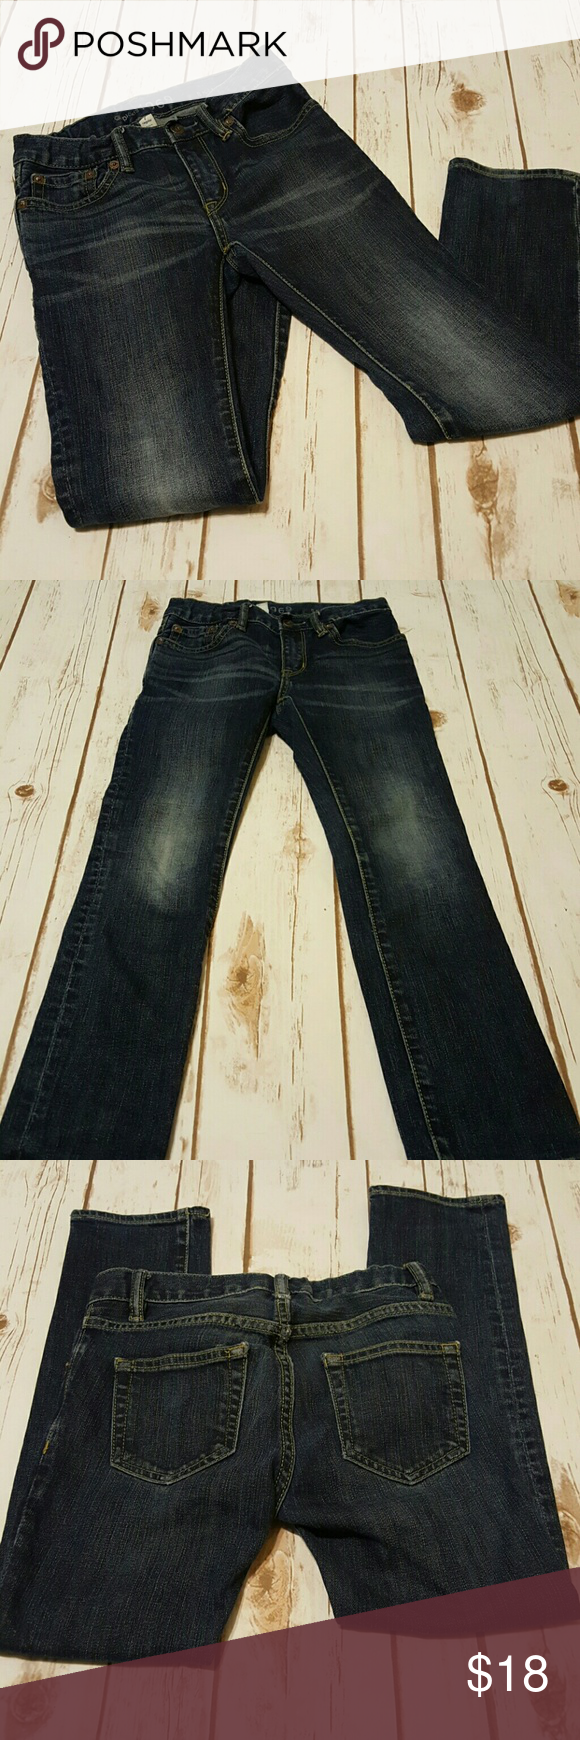 Gap kids 1969 skinny denim Gap kids skinny jeans with the faded distressed look. Excellent Pre-loved condition. GAP Bottoms Jeans